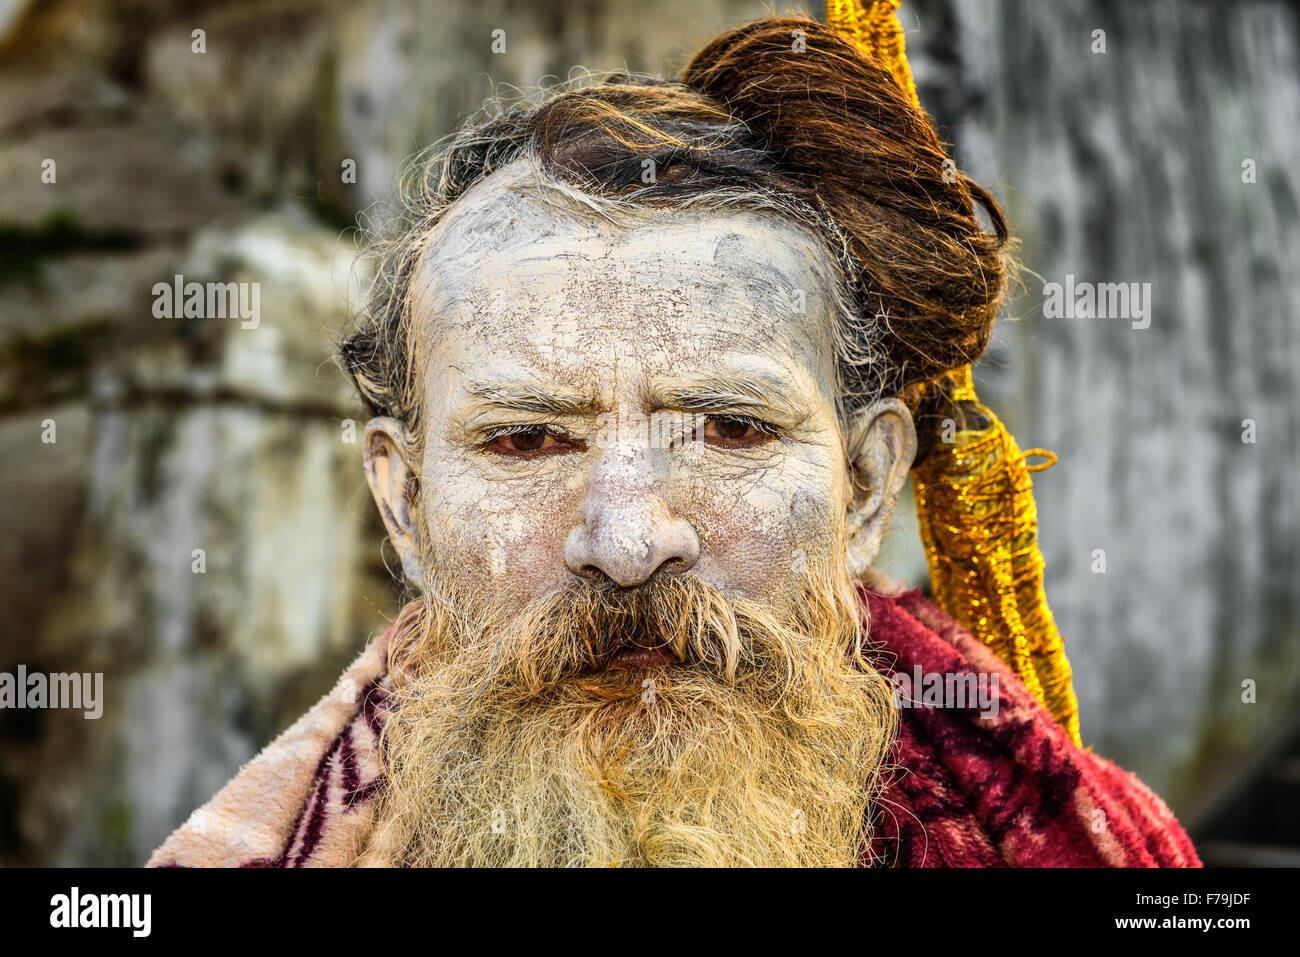 Portrait of wandering  Shaiva sadhu (holy man) with traditional face painting in ancient Pashupatinath Temple - Stock Image